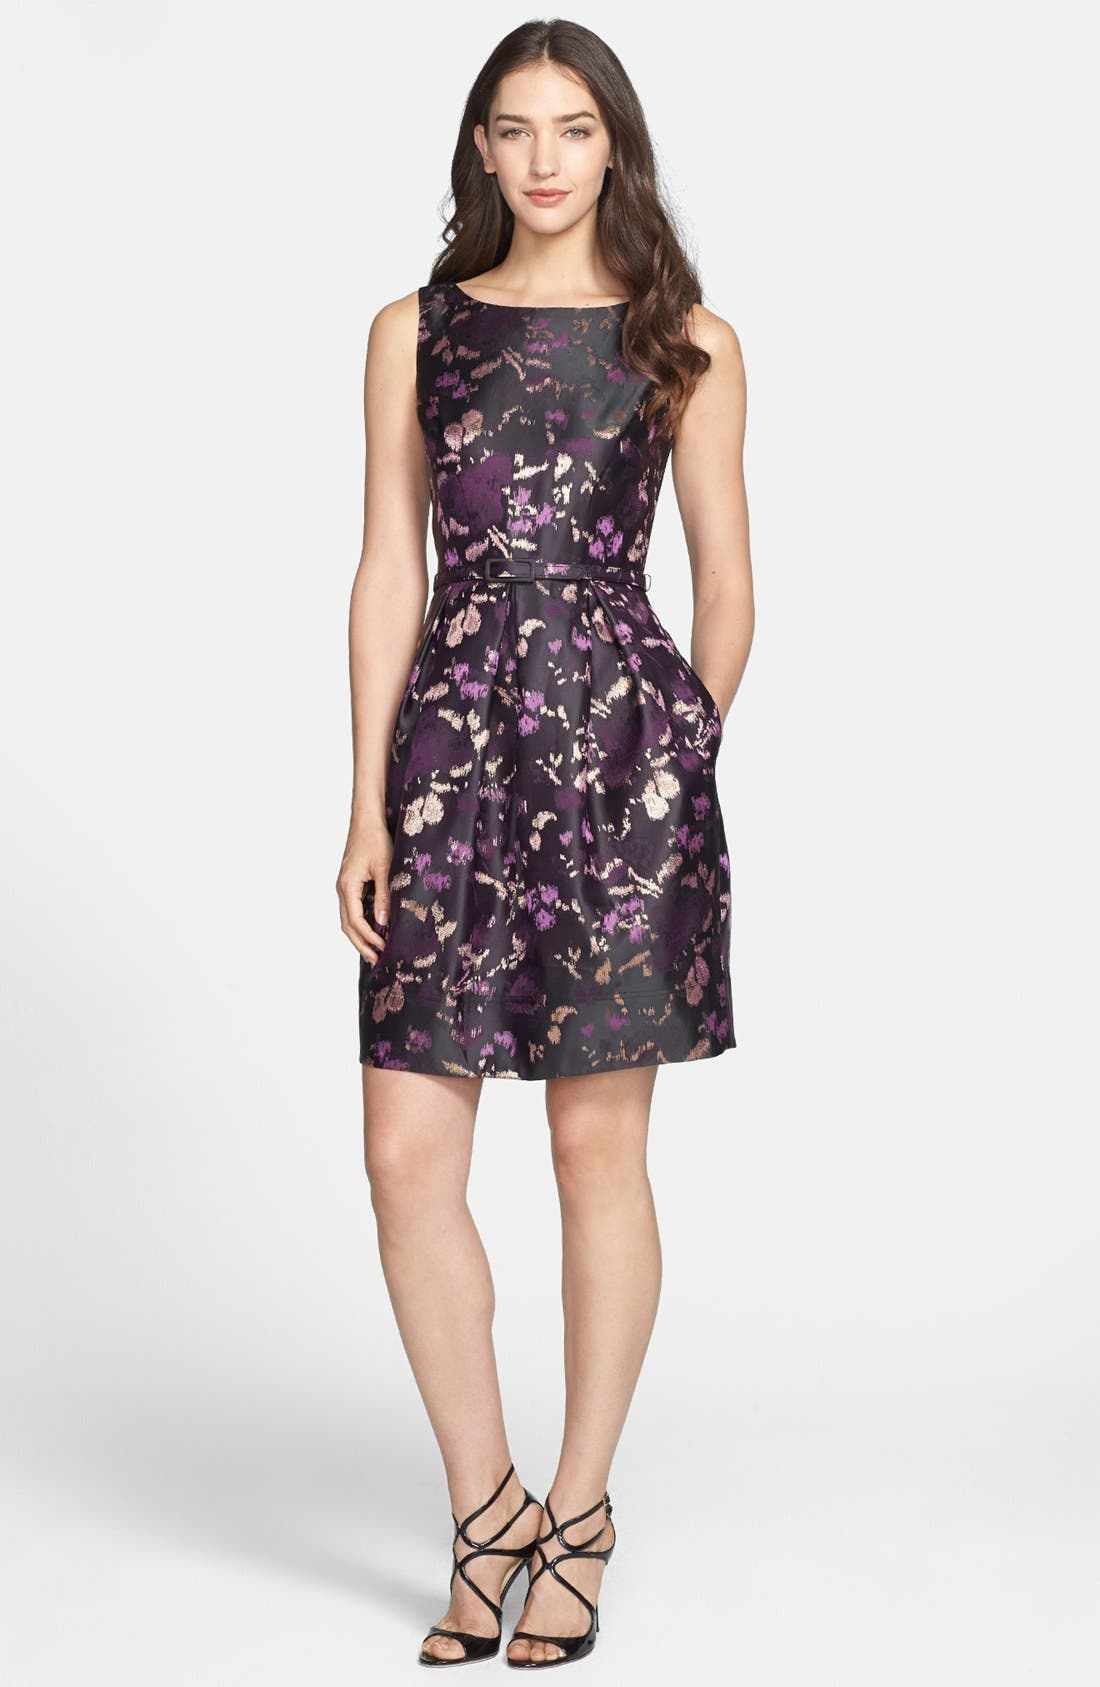 ELIZA J Brocade Fit & Flare Dress, Main, color, 500